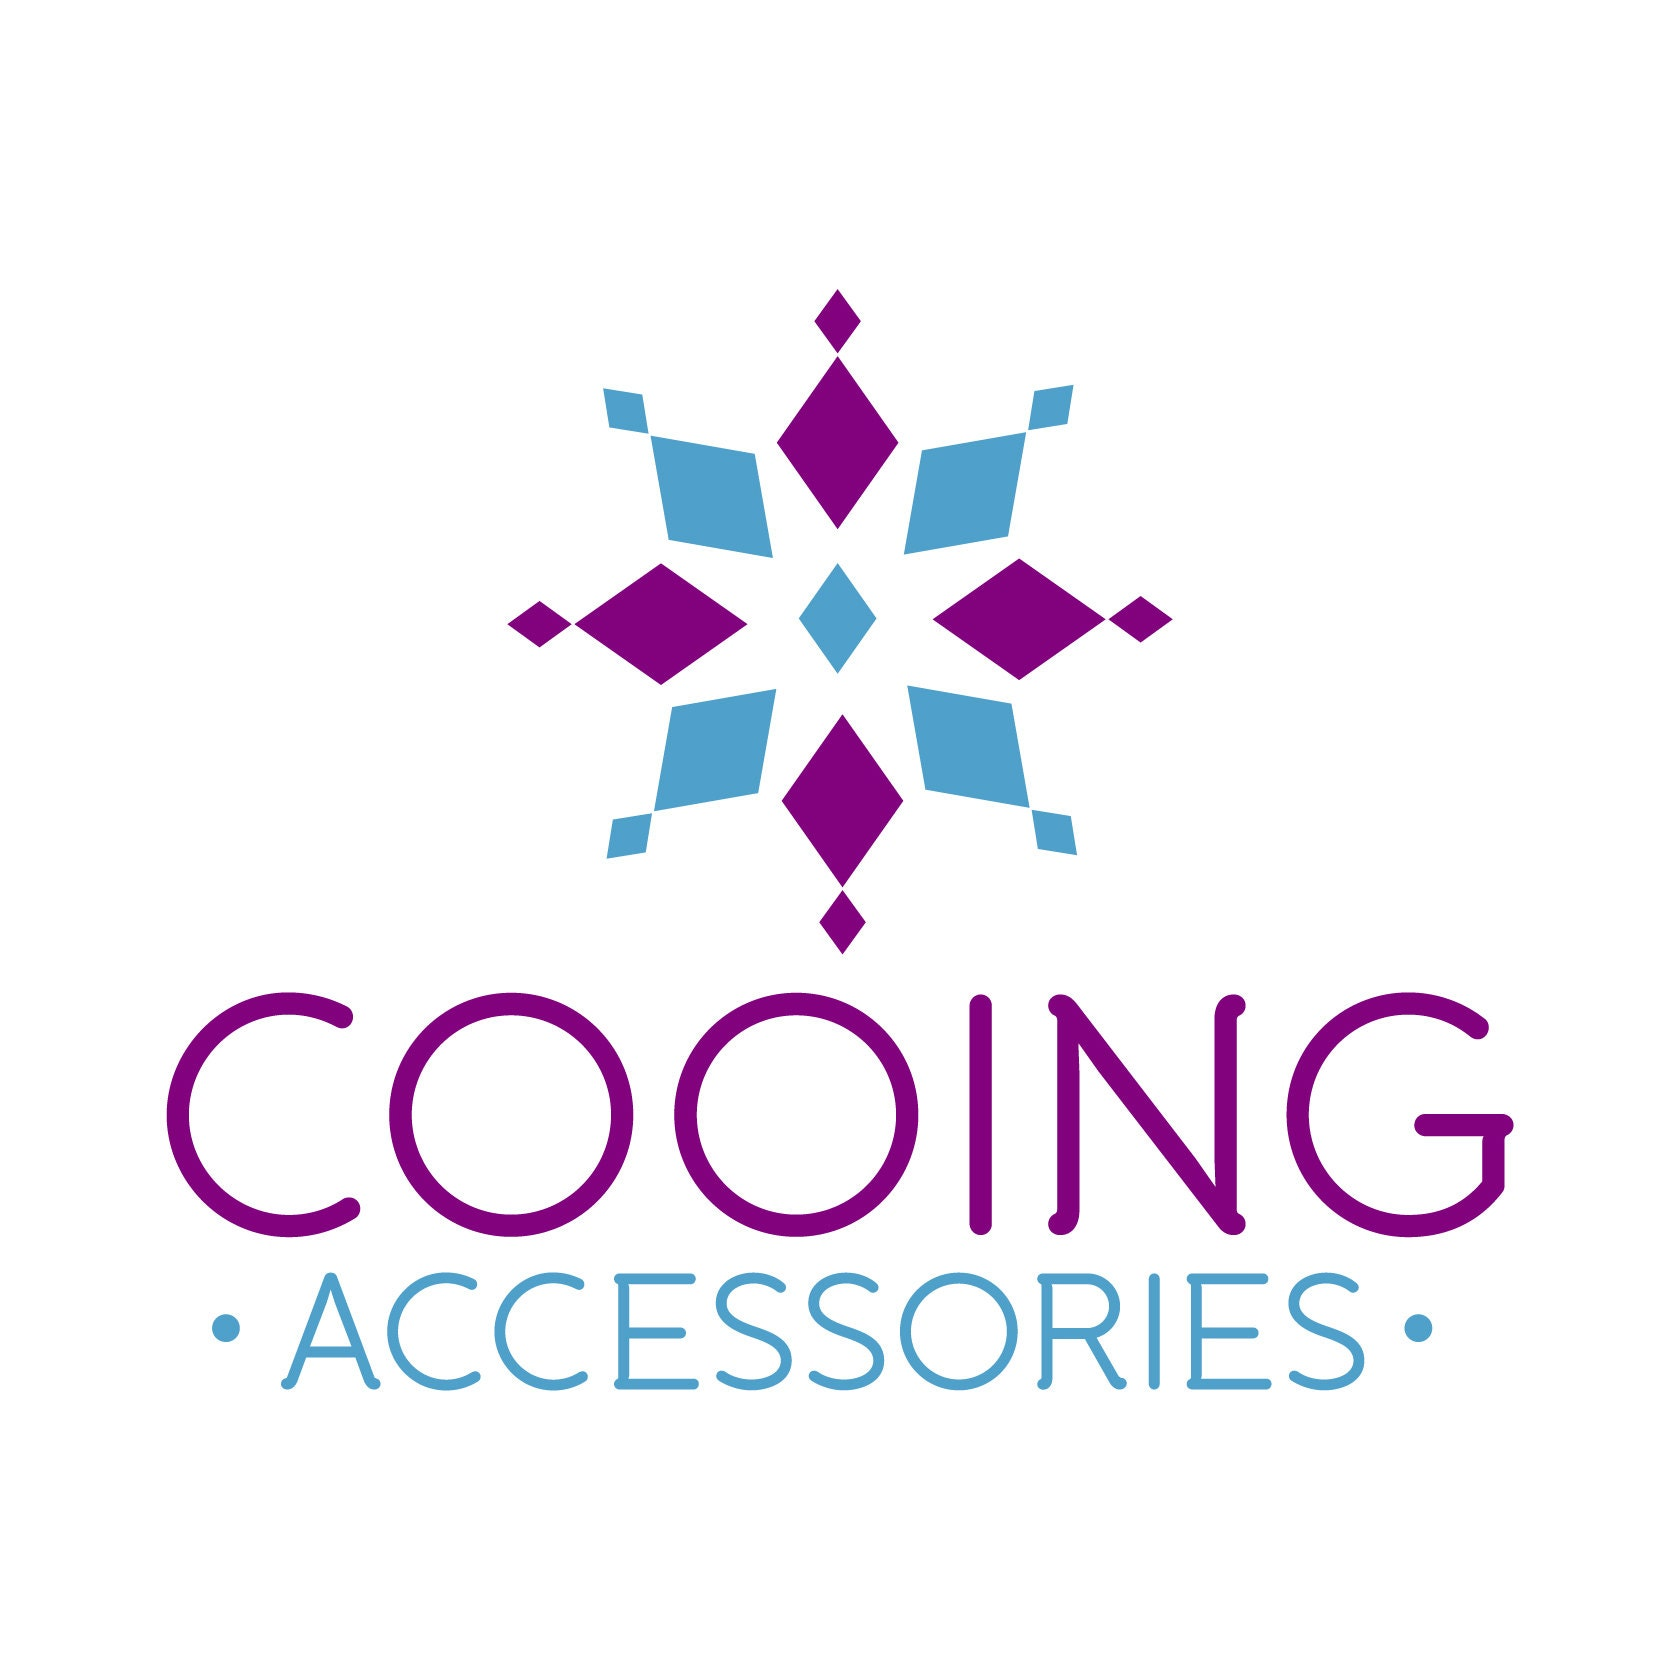 CooingAccessories - Cooing Accessories